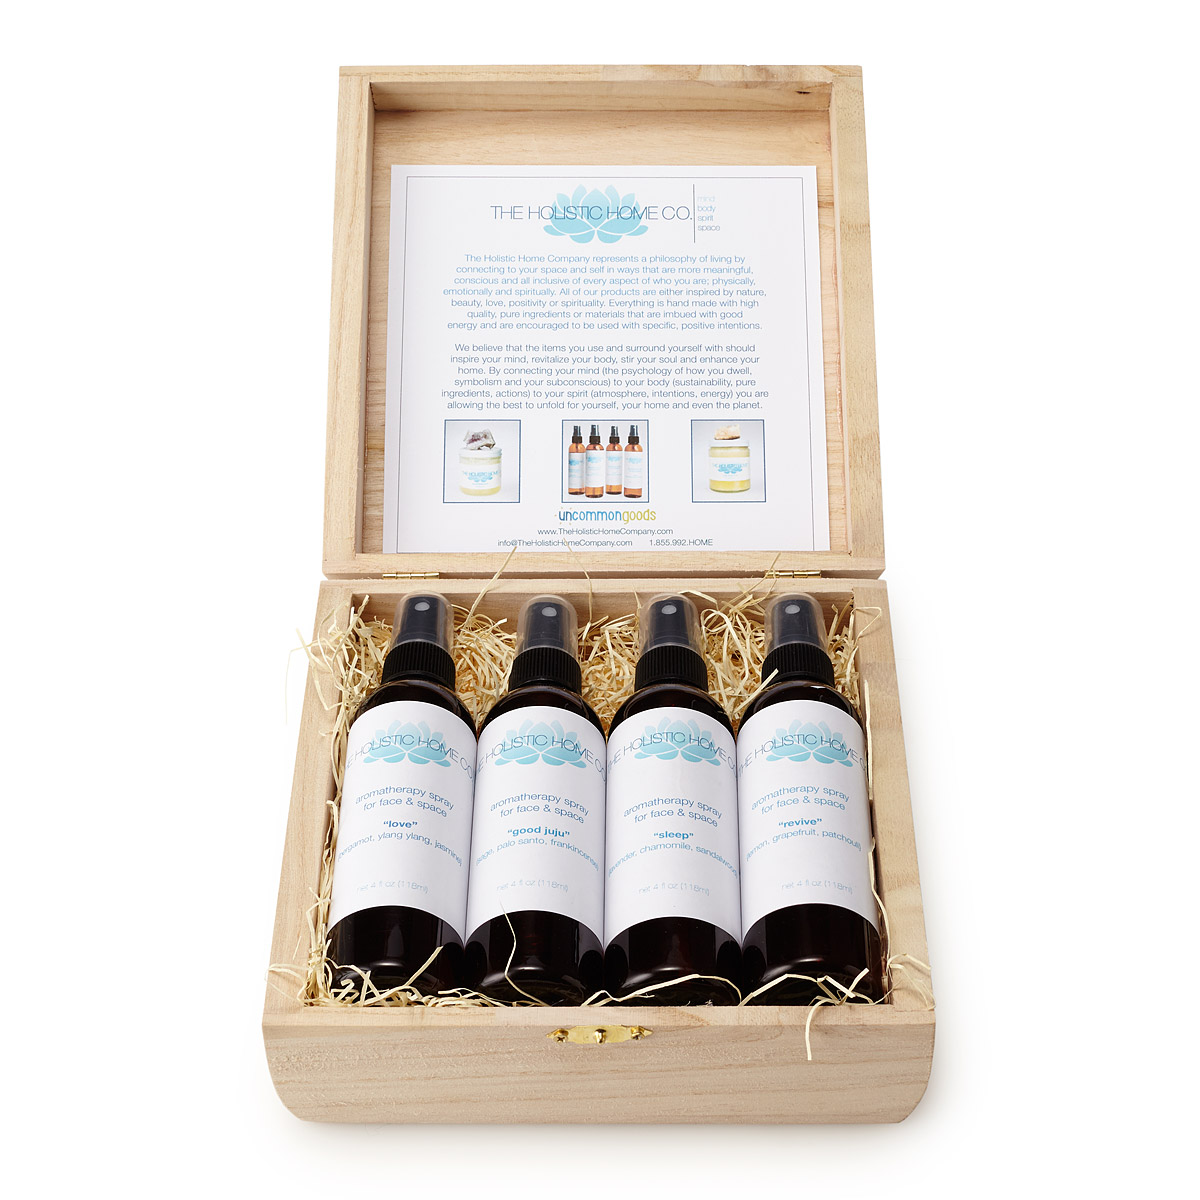 #906C3B AROMATHERAPY DELUXE GIFT SET Essential Oil Blends  Most Effective 1175 Aromatherapy Diffuser Set pictures with 1200x1200 px on helpvideos.info - Air Conditioners, Air Coolers and more